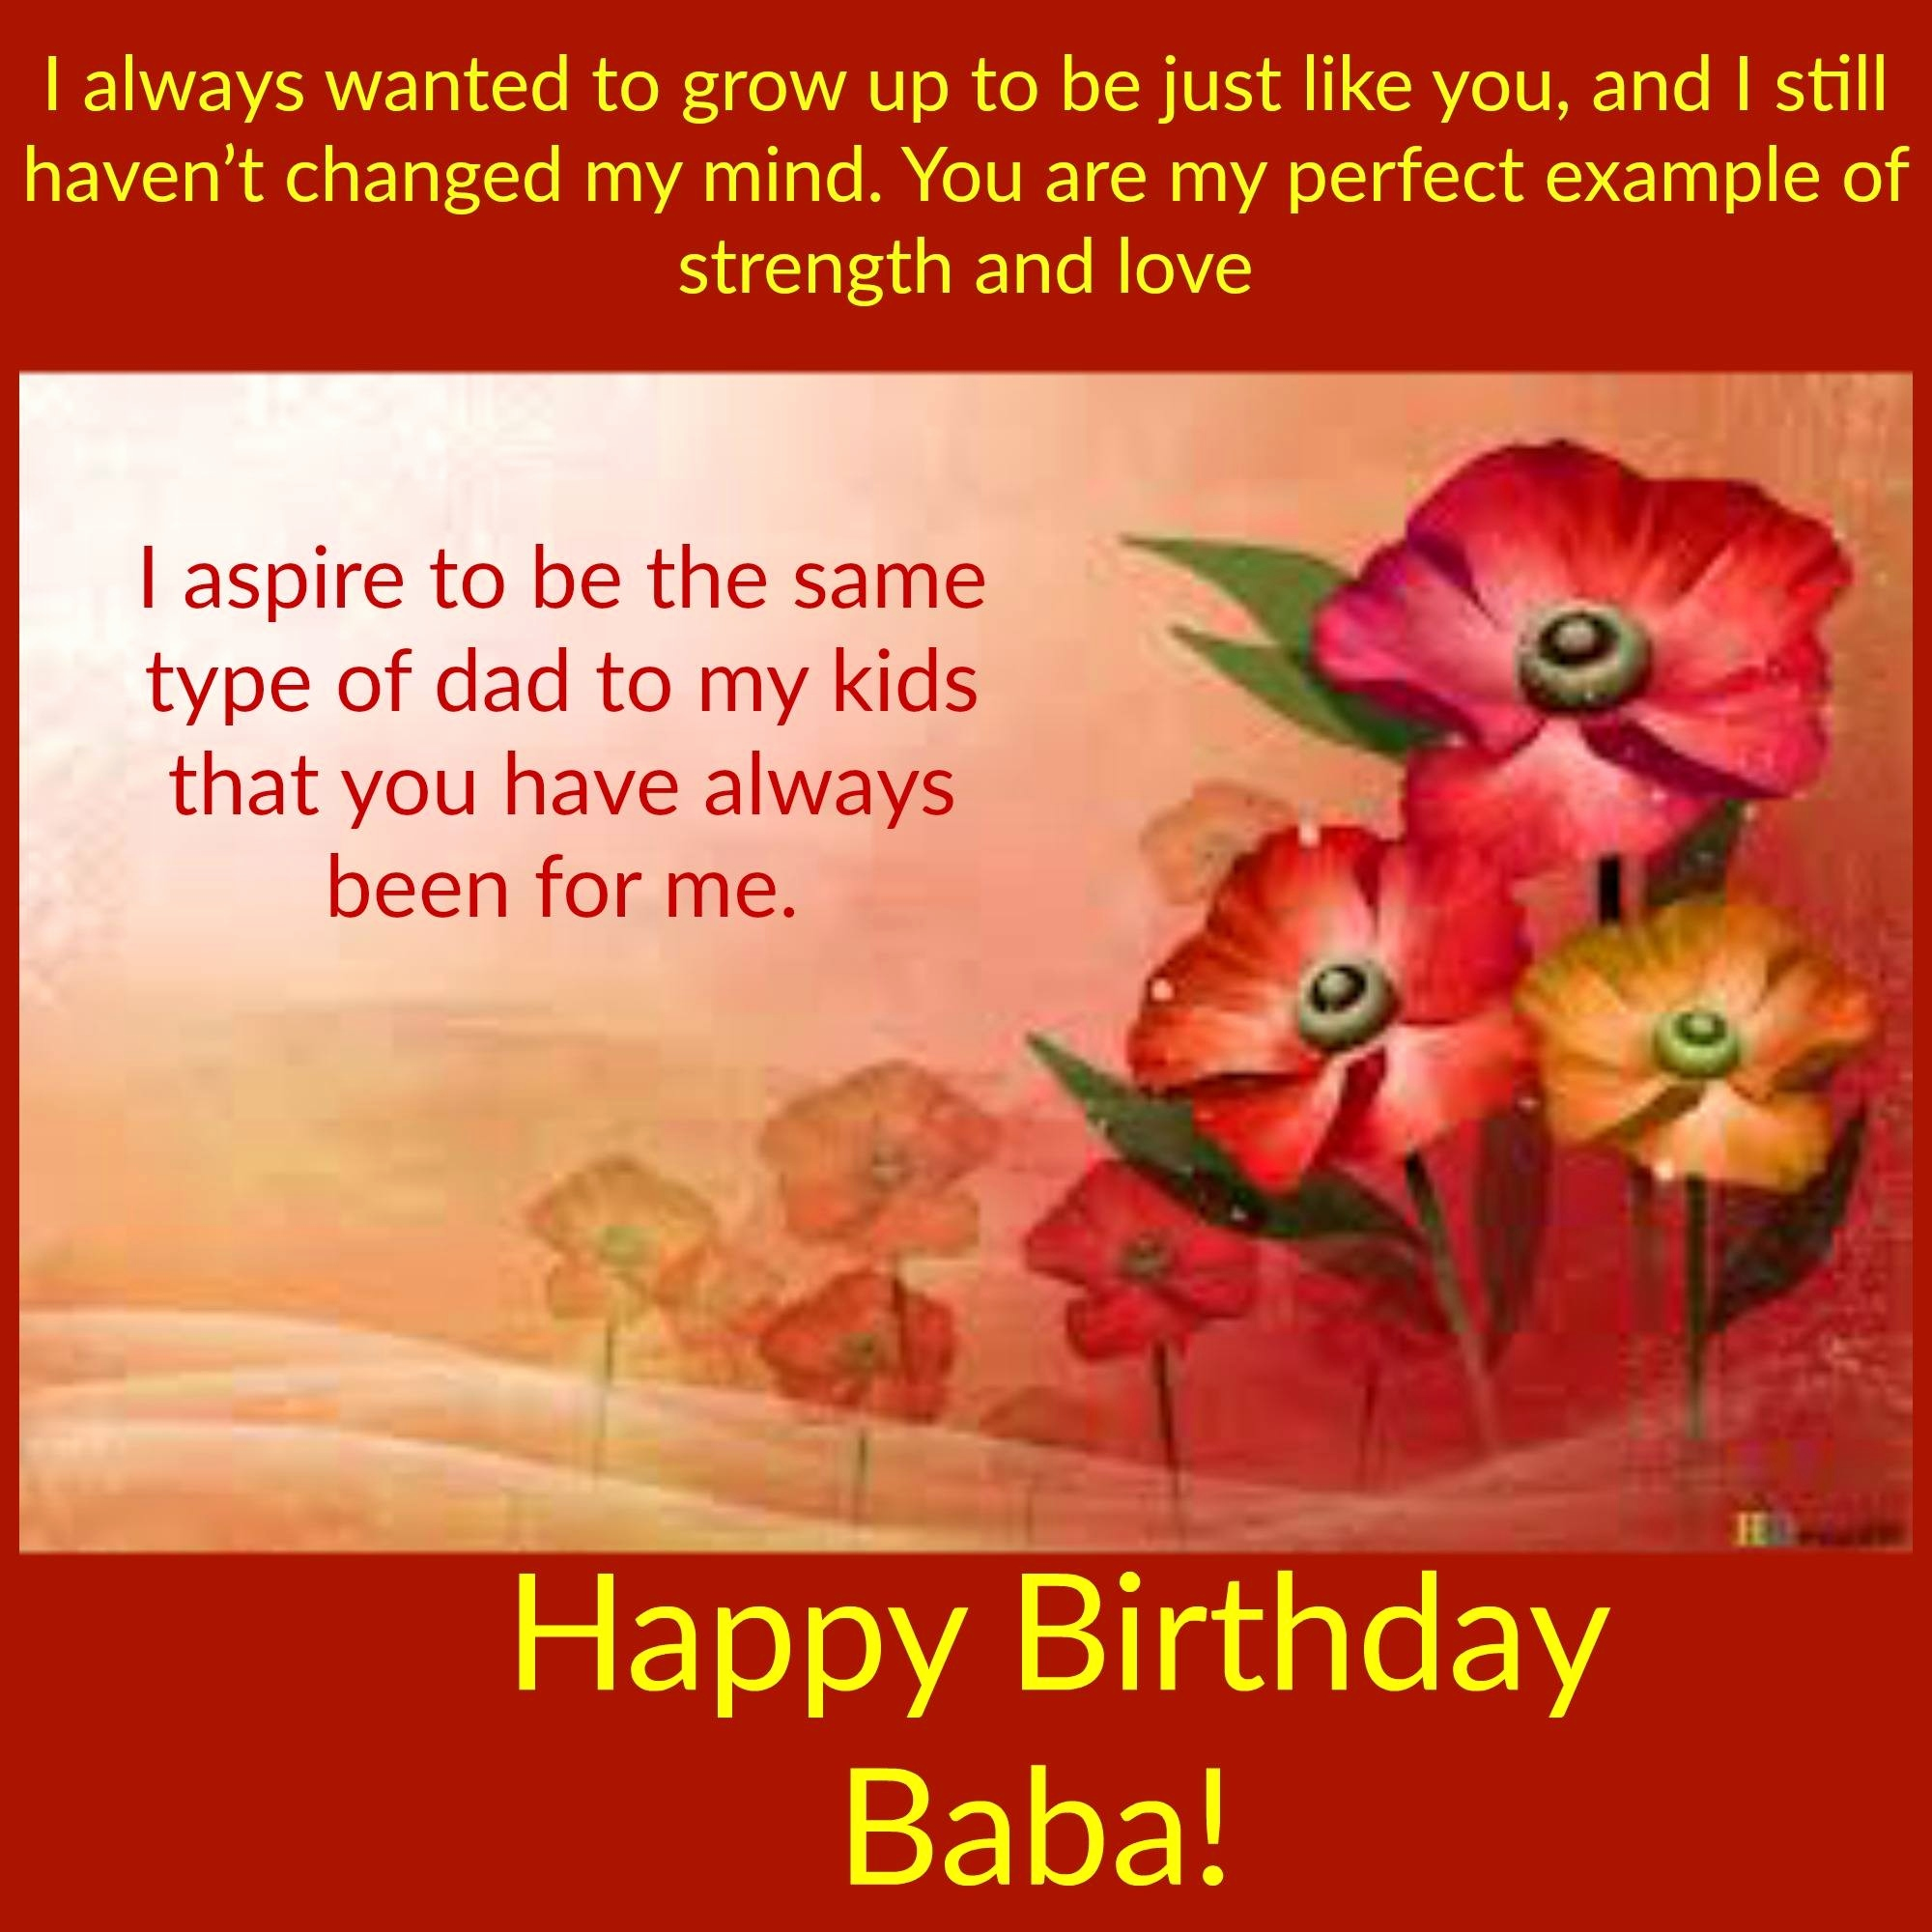 uncle birthday card messages ; uncle-birthday-card-messages-luxury-50-islamic-birthday-and-newborn-baby-wishes-messages-amp-quotes-of-uncle-birthday-card-messages